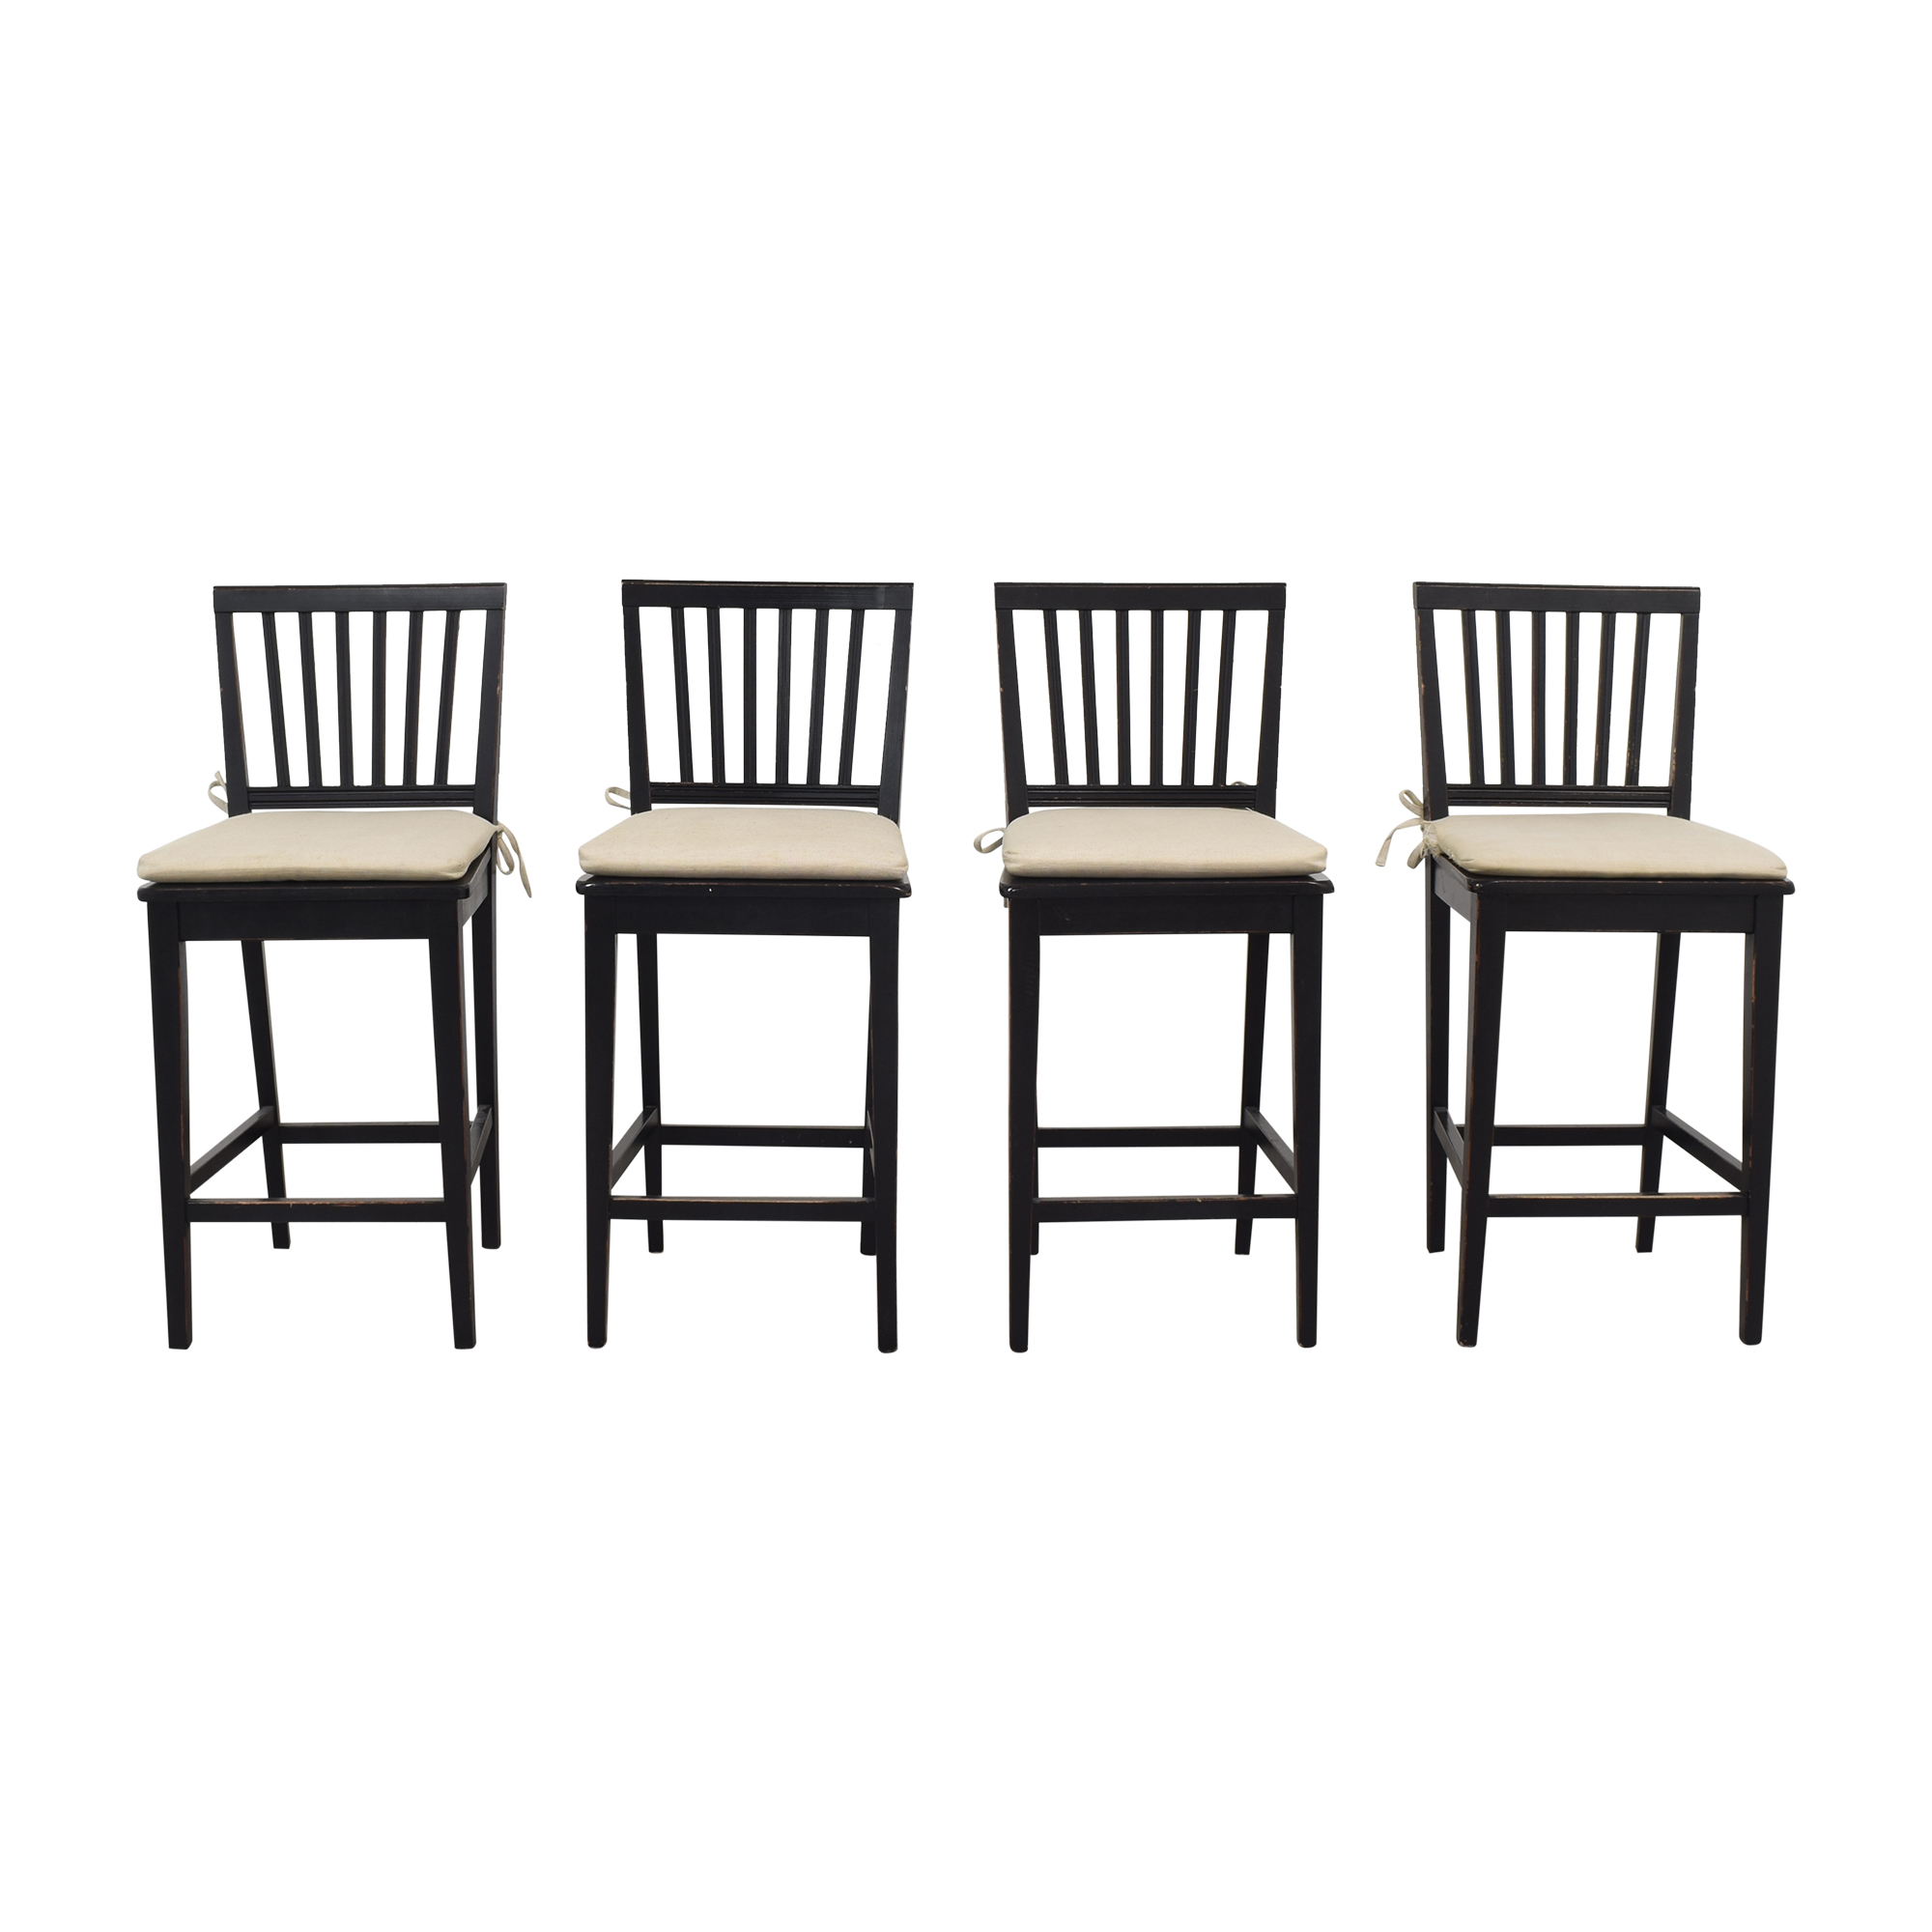 Crate & Barrel Crate & Barrel Buying & Design Counter Height Chairs for sale